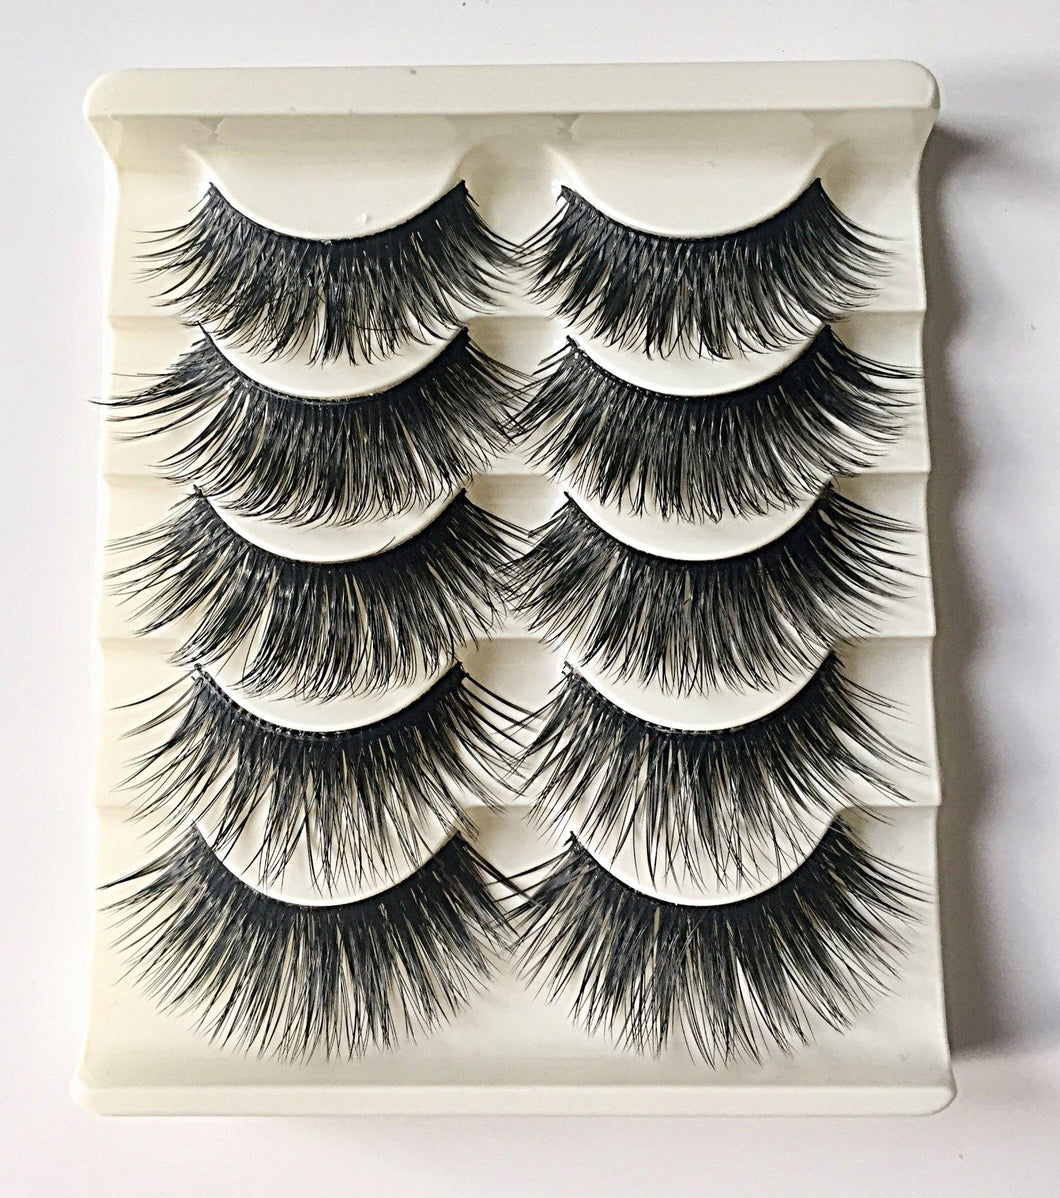 N10: Multi-Pack (5 Pairs) False Dramatic Thick Eyelashes - Dramatic Eyelashes